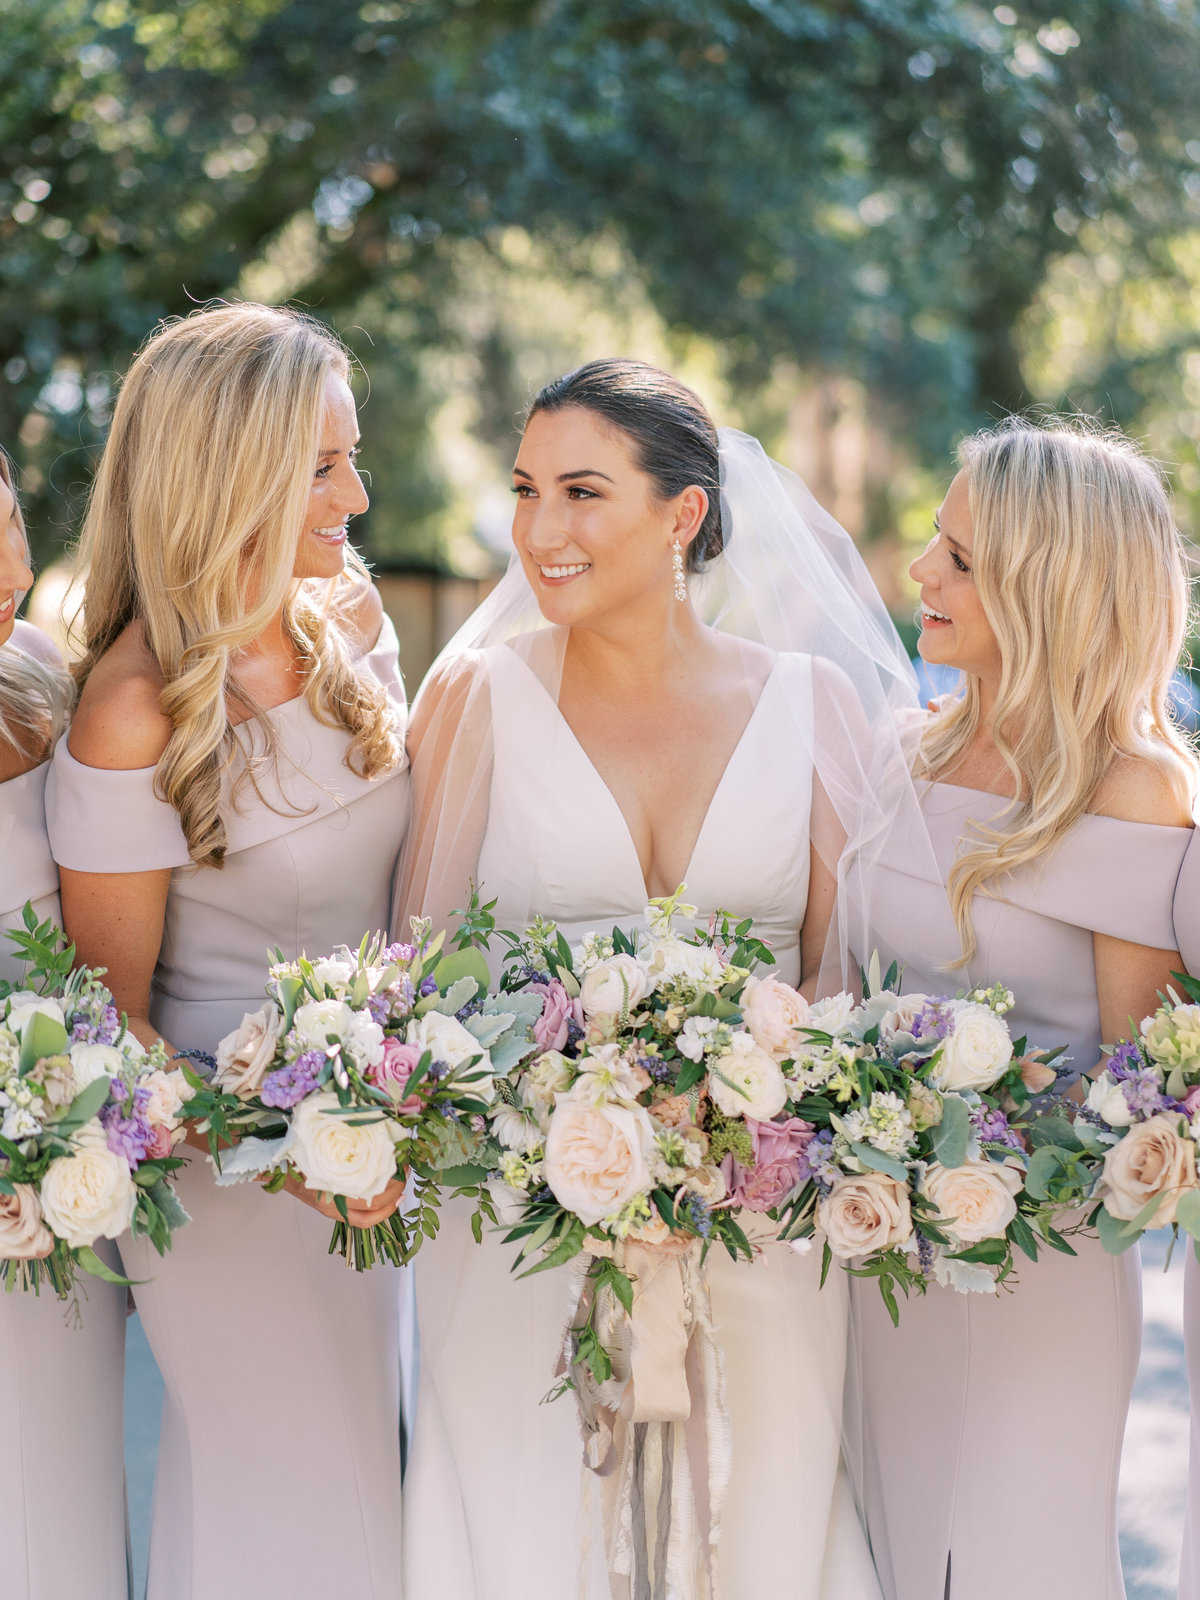 Kelsey + Alex Sonoma Buena Vista Winery Wedding - Cassie Valente Photography 0258